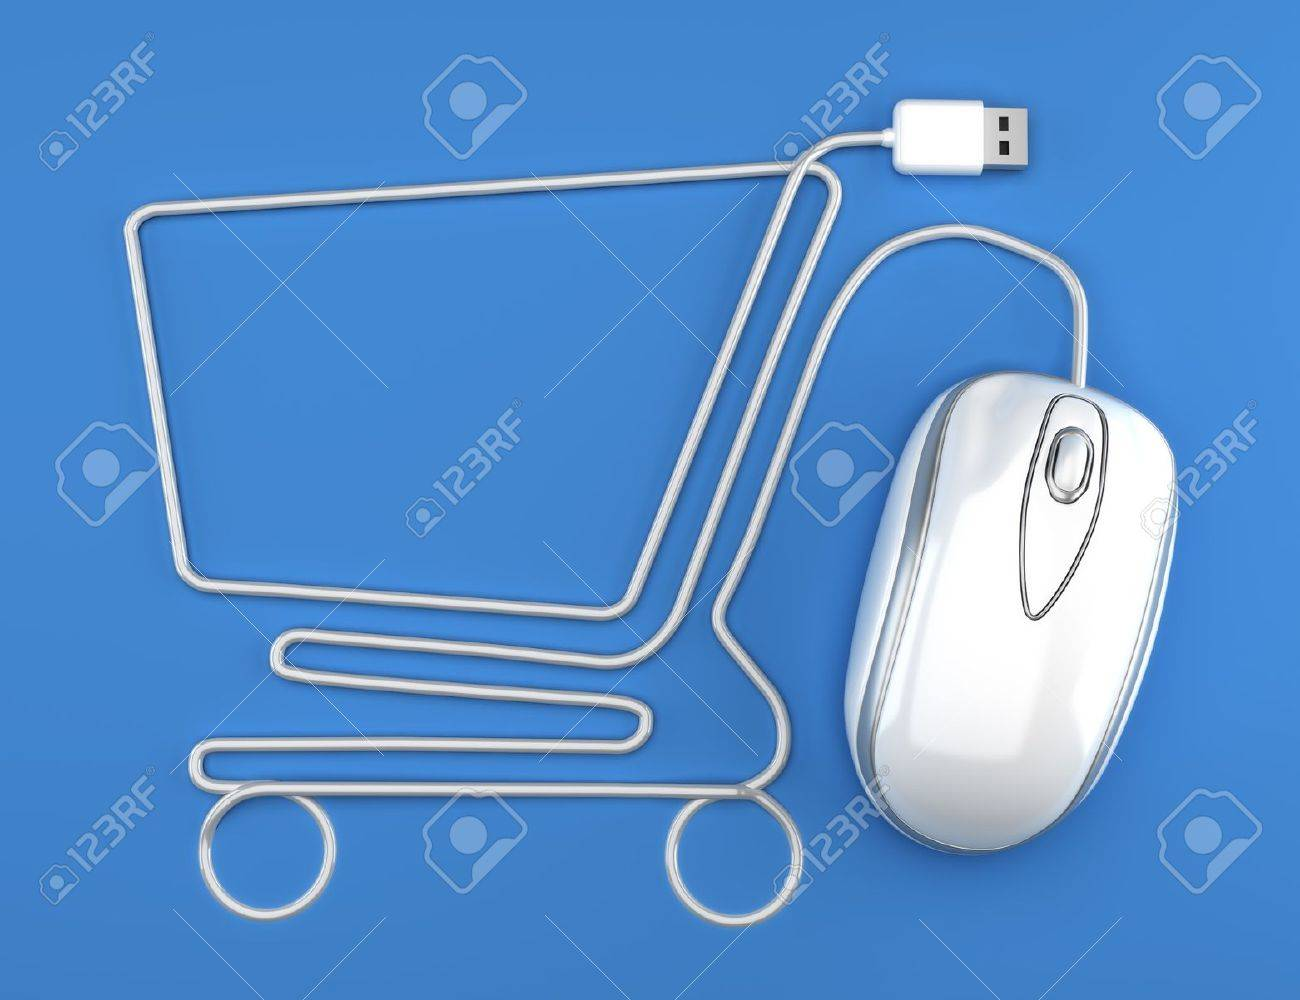 Online shopping, White mouse in the shape of a shopping cart Stock Photo - 15363350